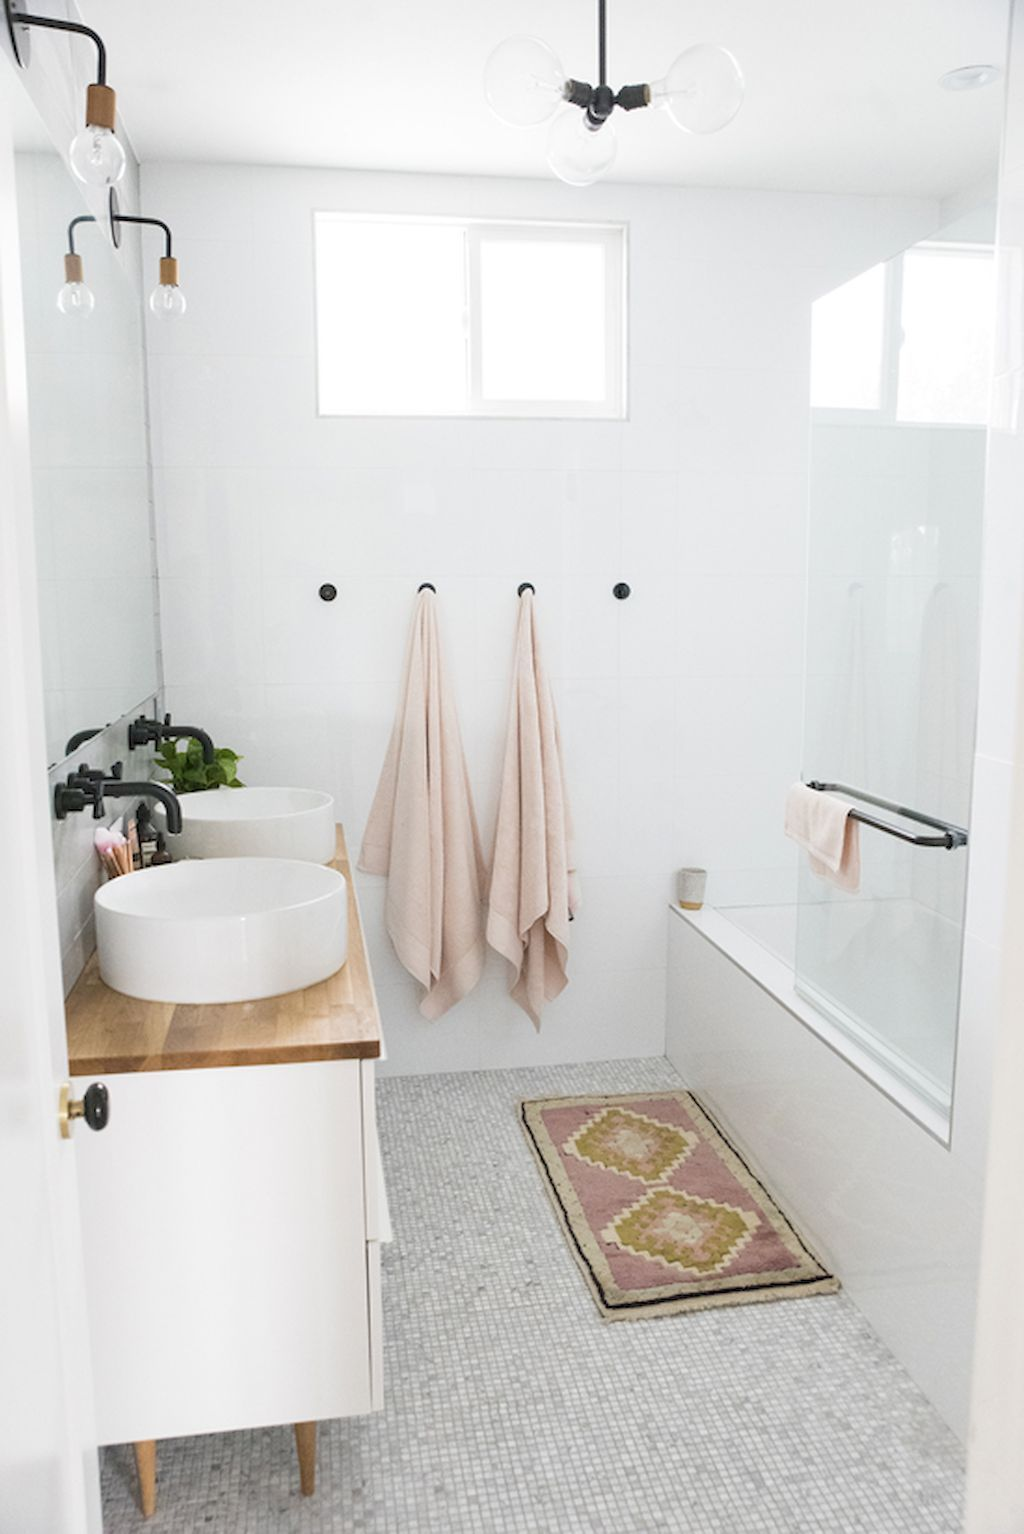 Cool 80 Small Apartment Bathroom Remodel Ideas https://roomodeling ...